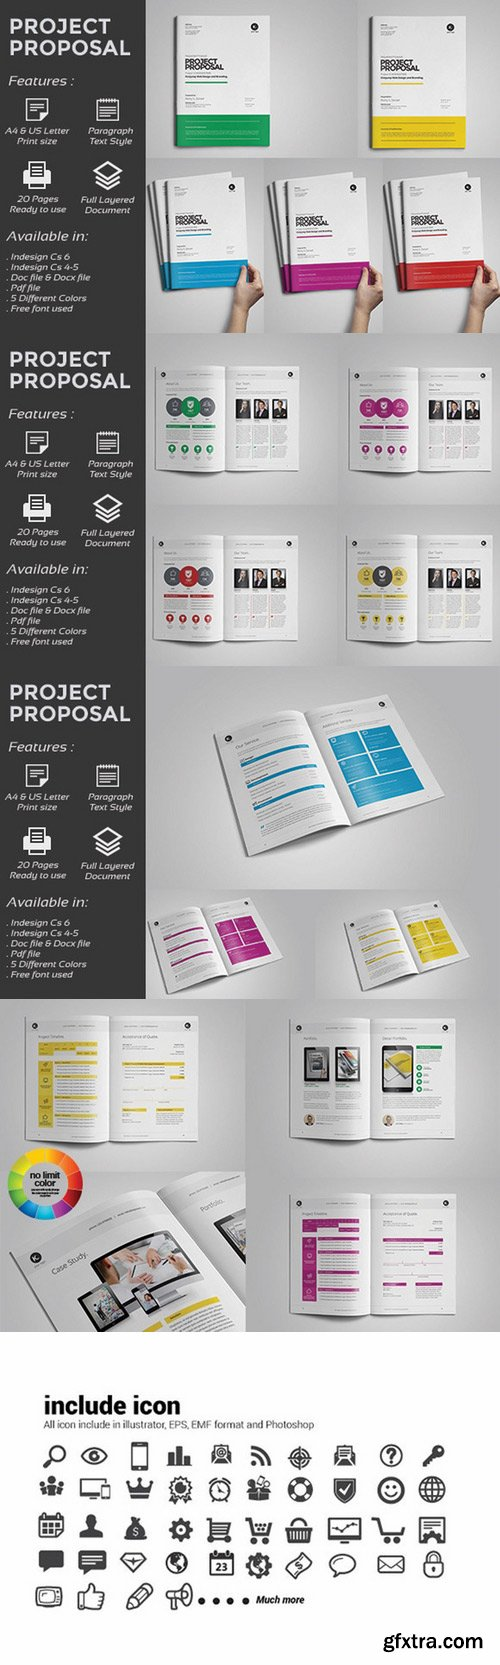 CM - Web Design Proposal 333905